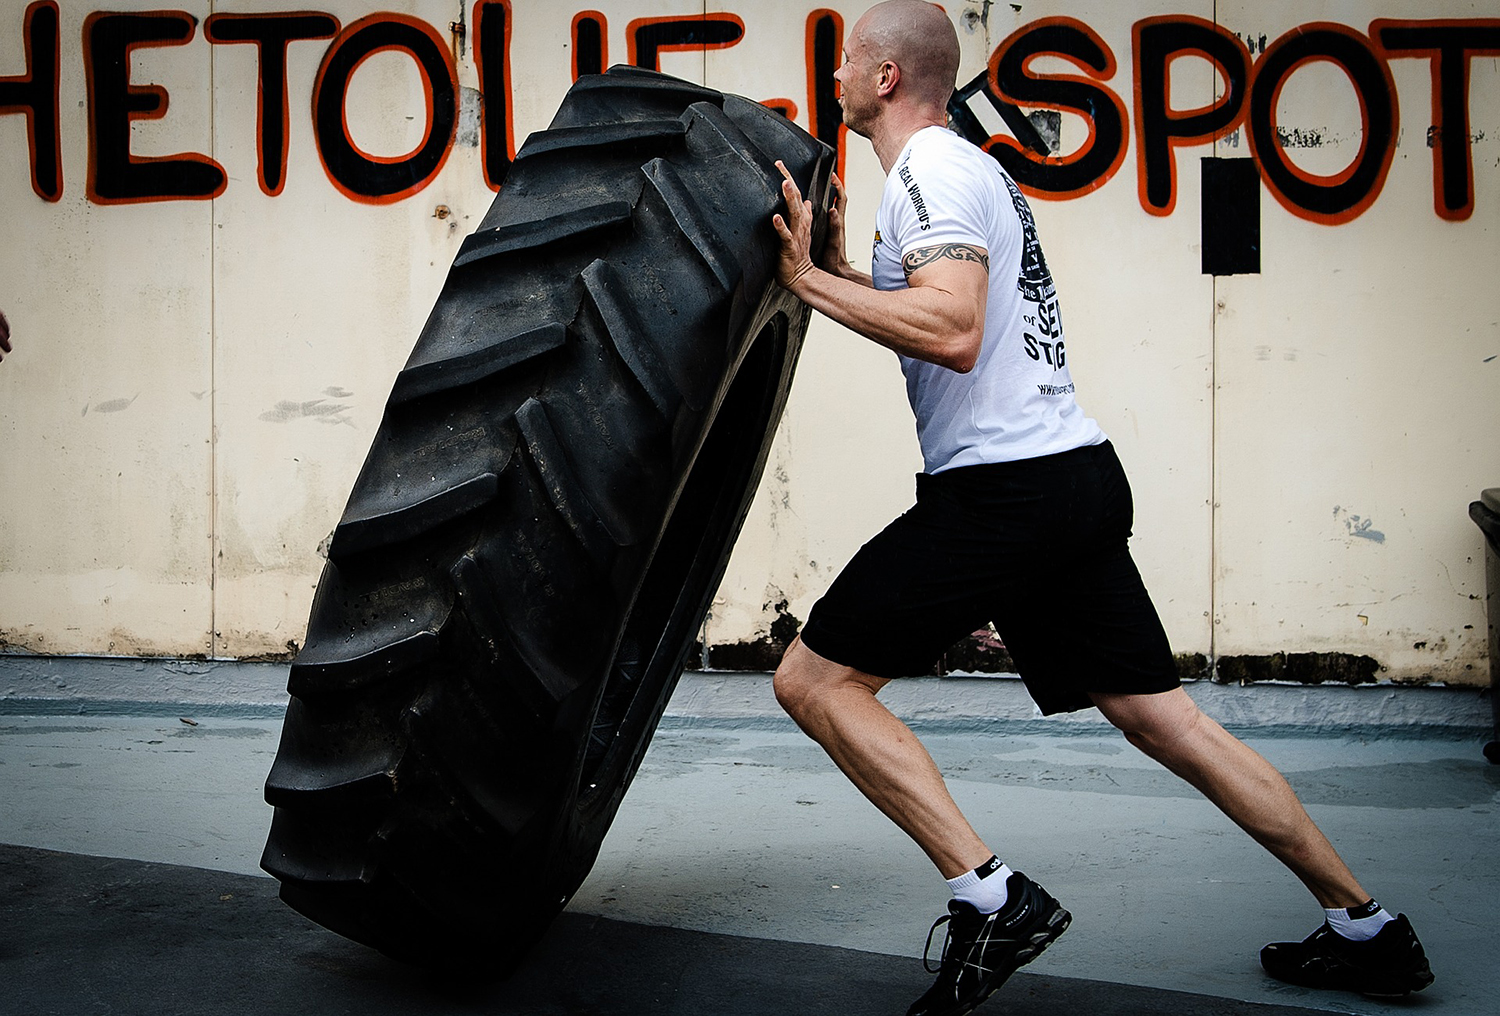 Crossfit Man Doing Tyre Flipping Exercise